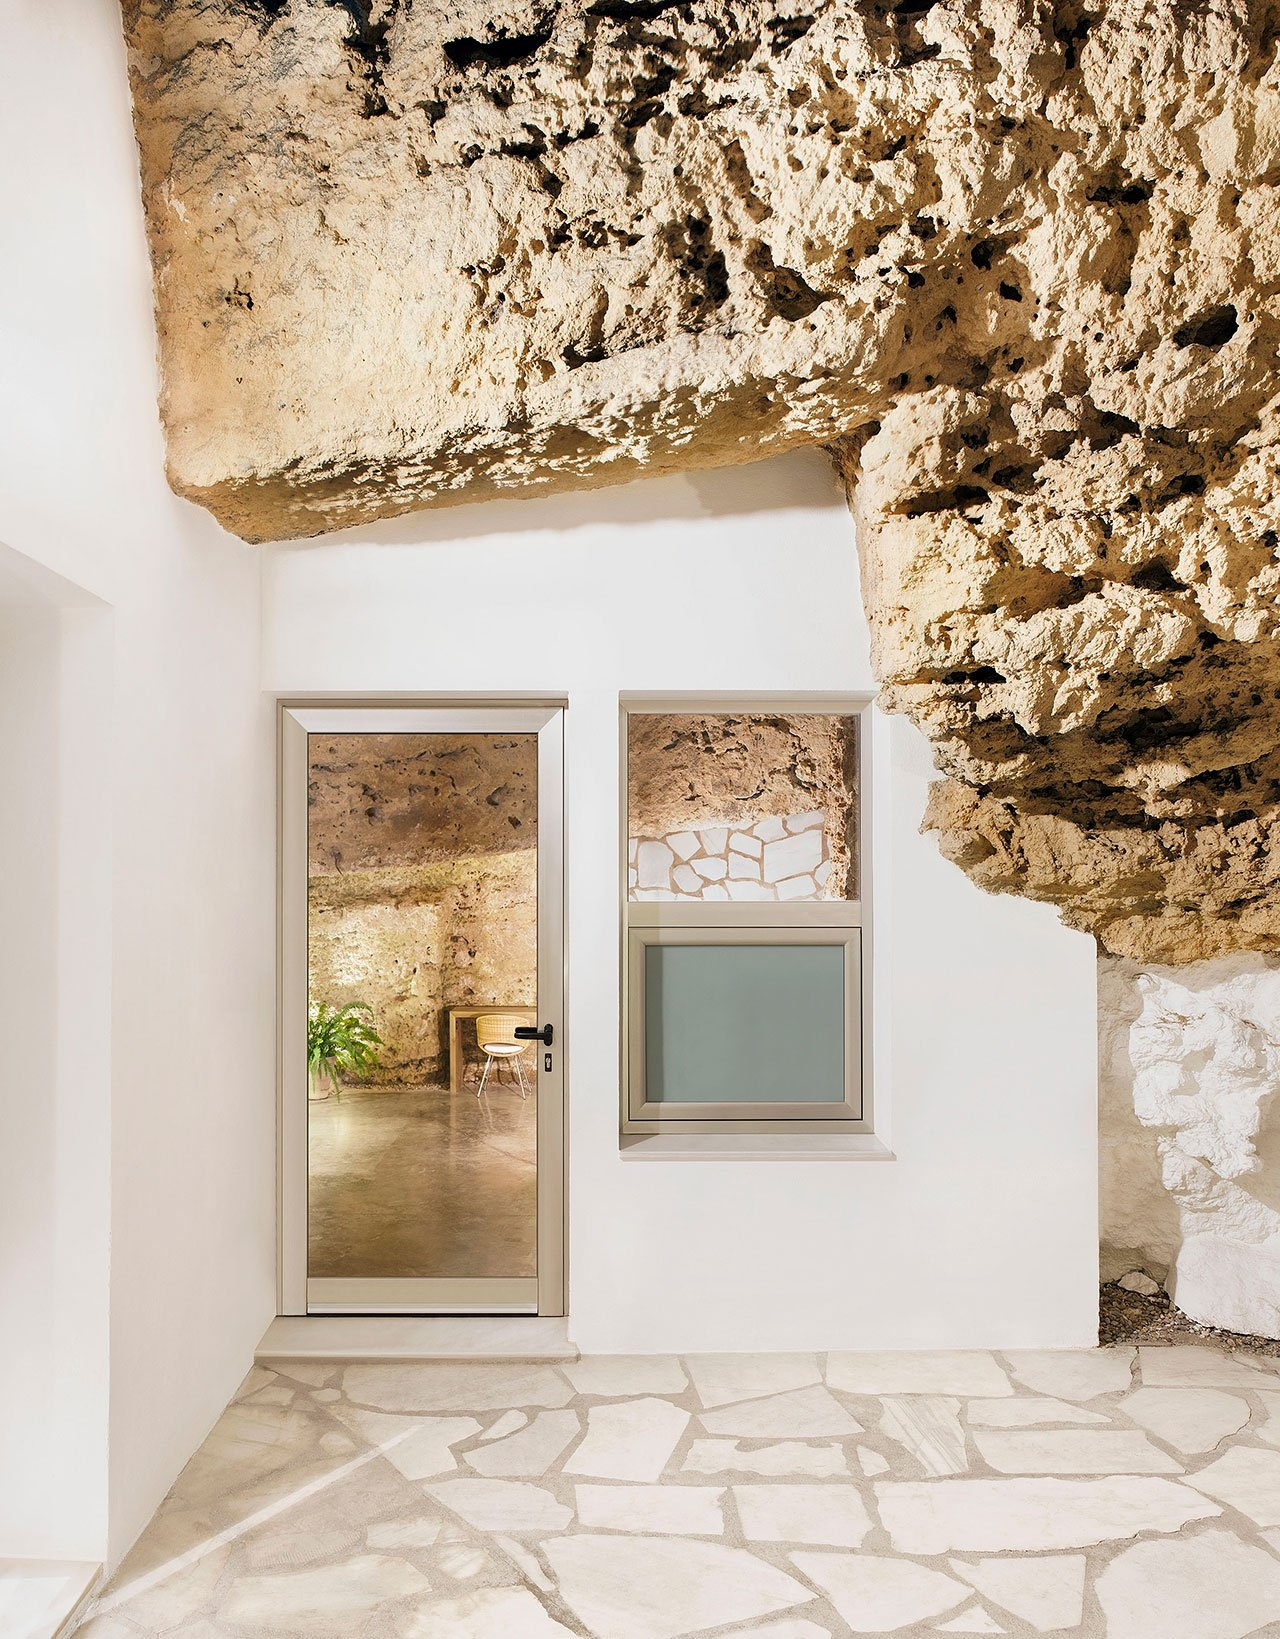 s9_cave_house_villarrubia_cordoba_spain_ummo_estudio_photo_david_vico_yatzer